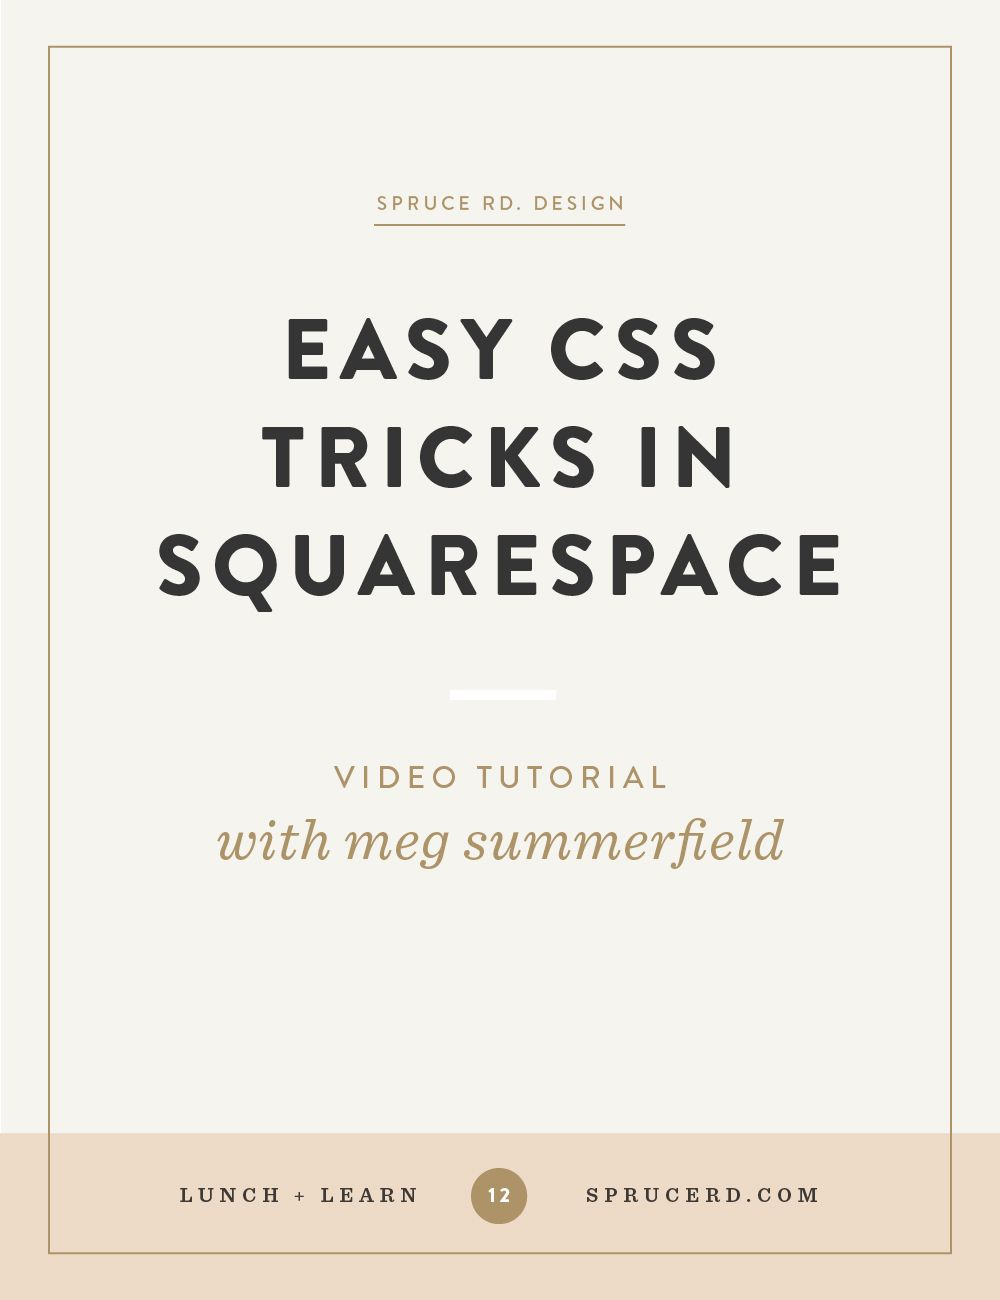 Easy css tricks in squarespace video tutorials this video and easy css tricks in squarespace spruce rd in this video tutorial meg pronofoot35fo Gallery